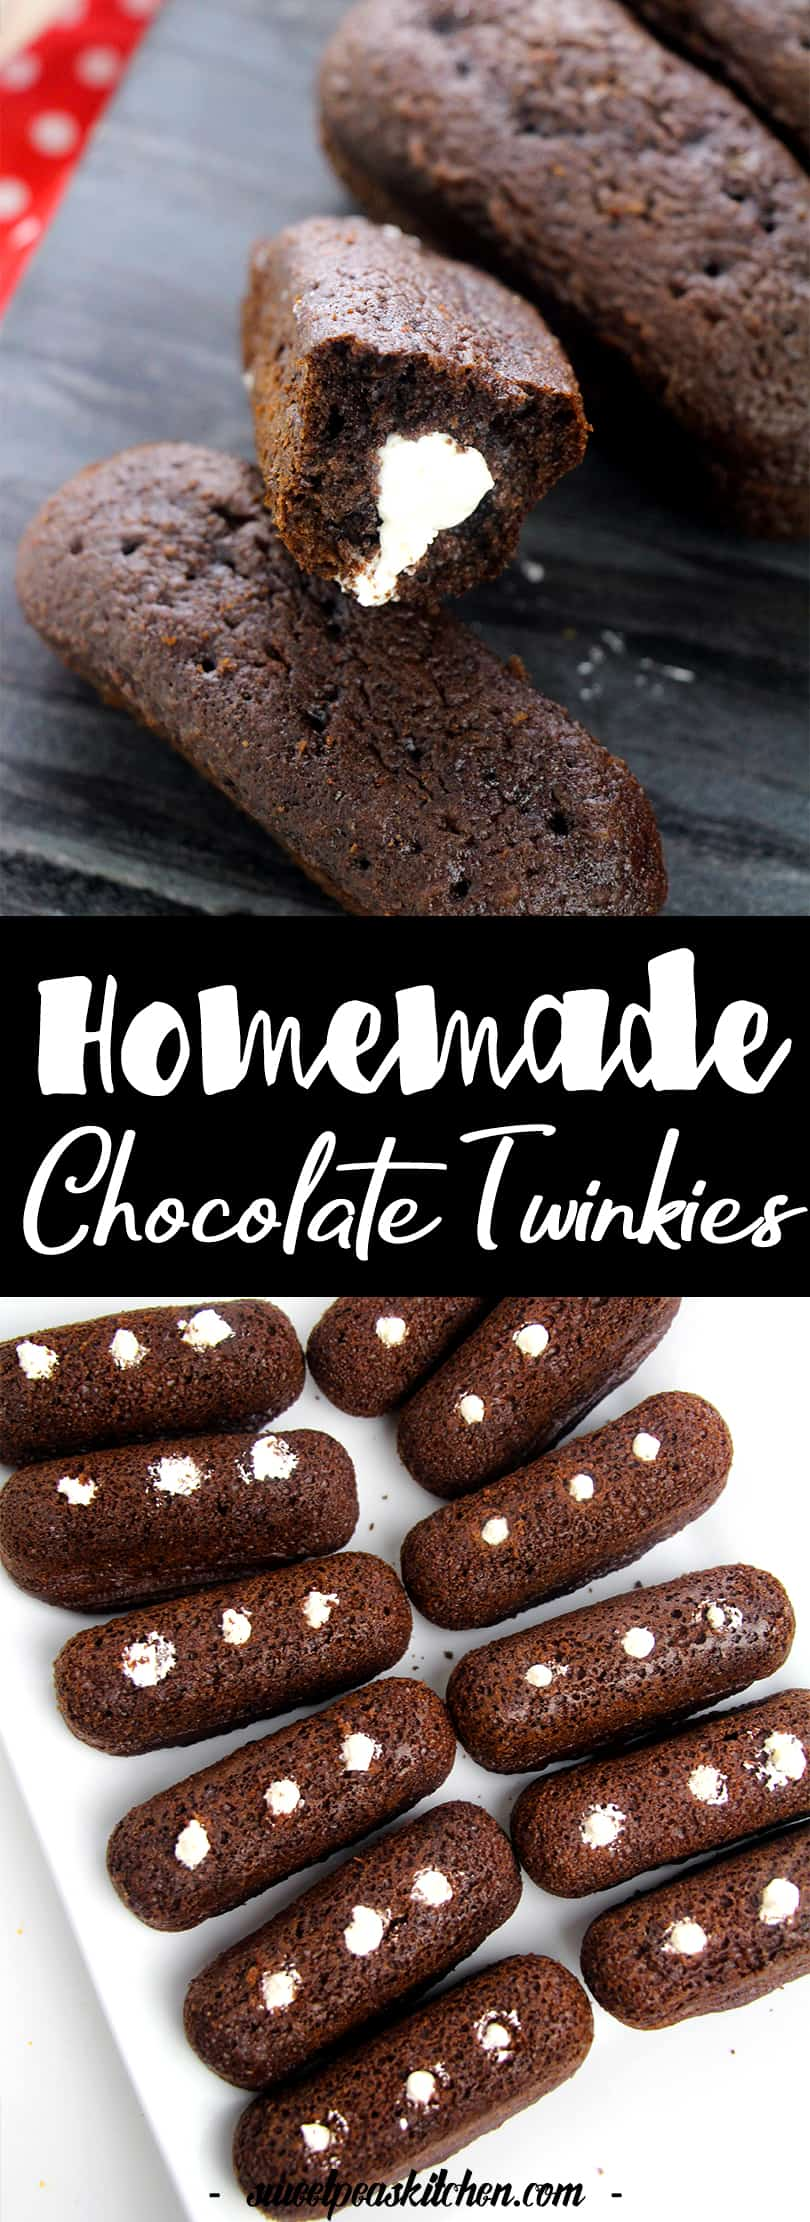 Chocolate Homemade Twinkie Recipe with Cream Filling